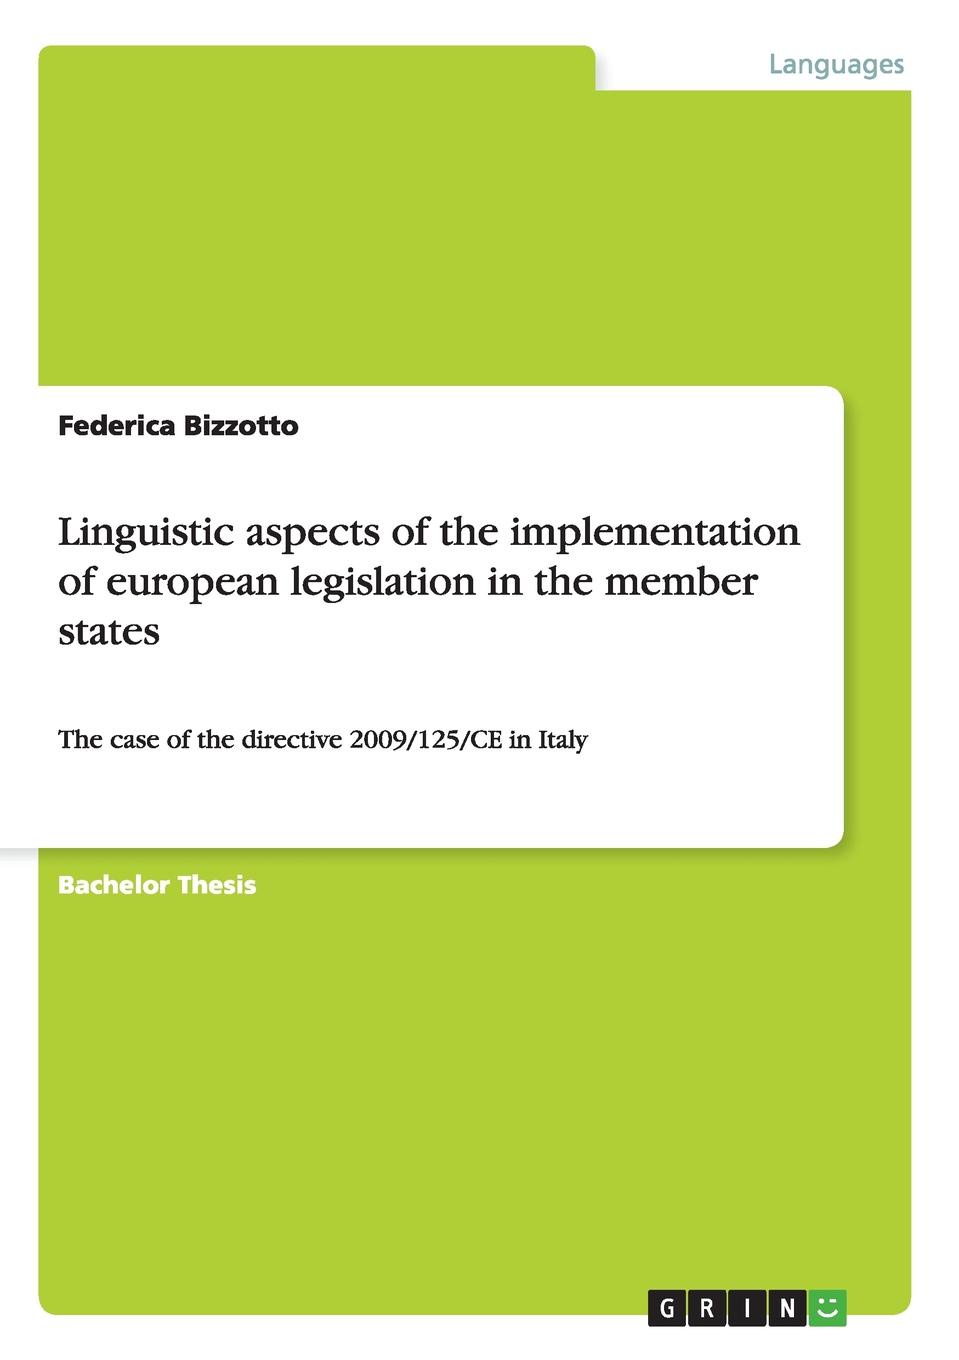 Federica Bizzotto Linguistic aspects of the implementation of european legislation in the member states matthias strohmayer posting of workers within the european union the enforcement directive 2014 67 eu and shortfalls of existing legislation